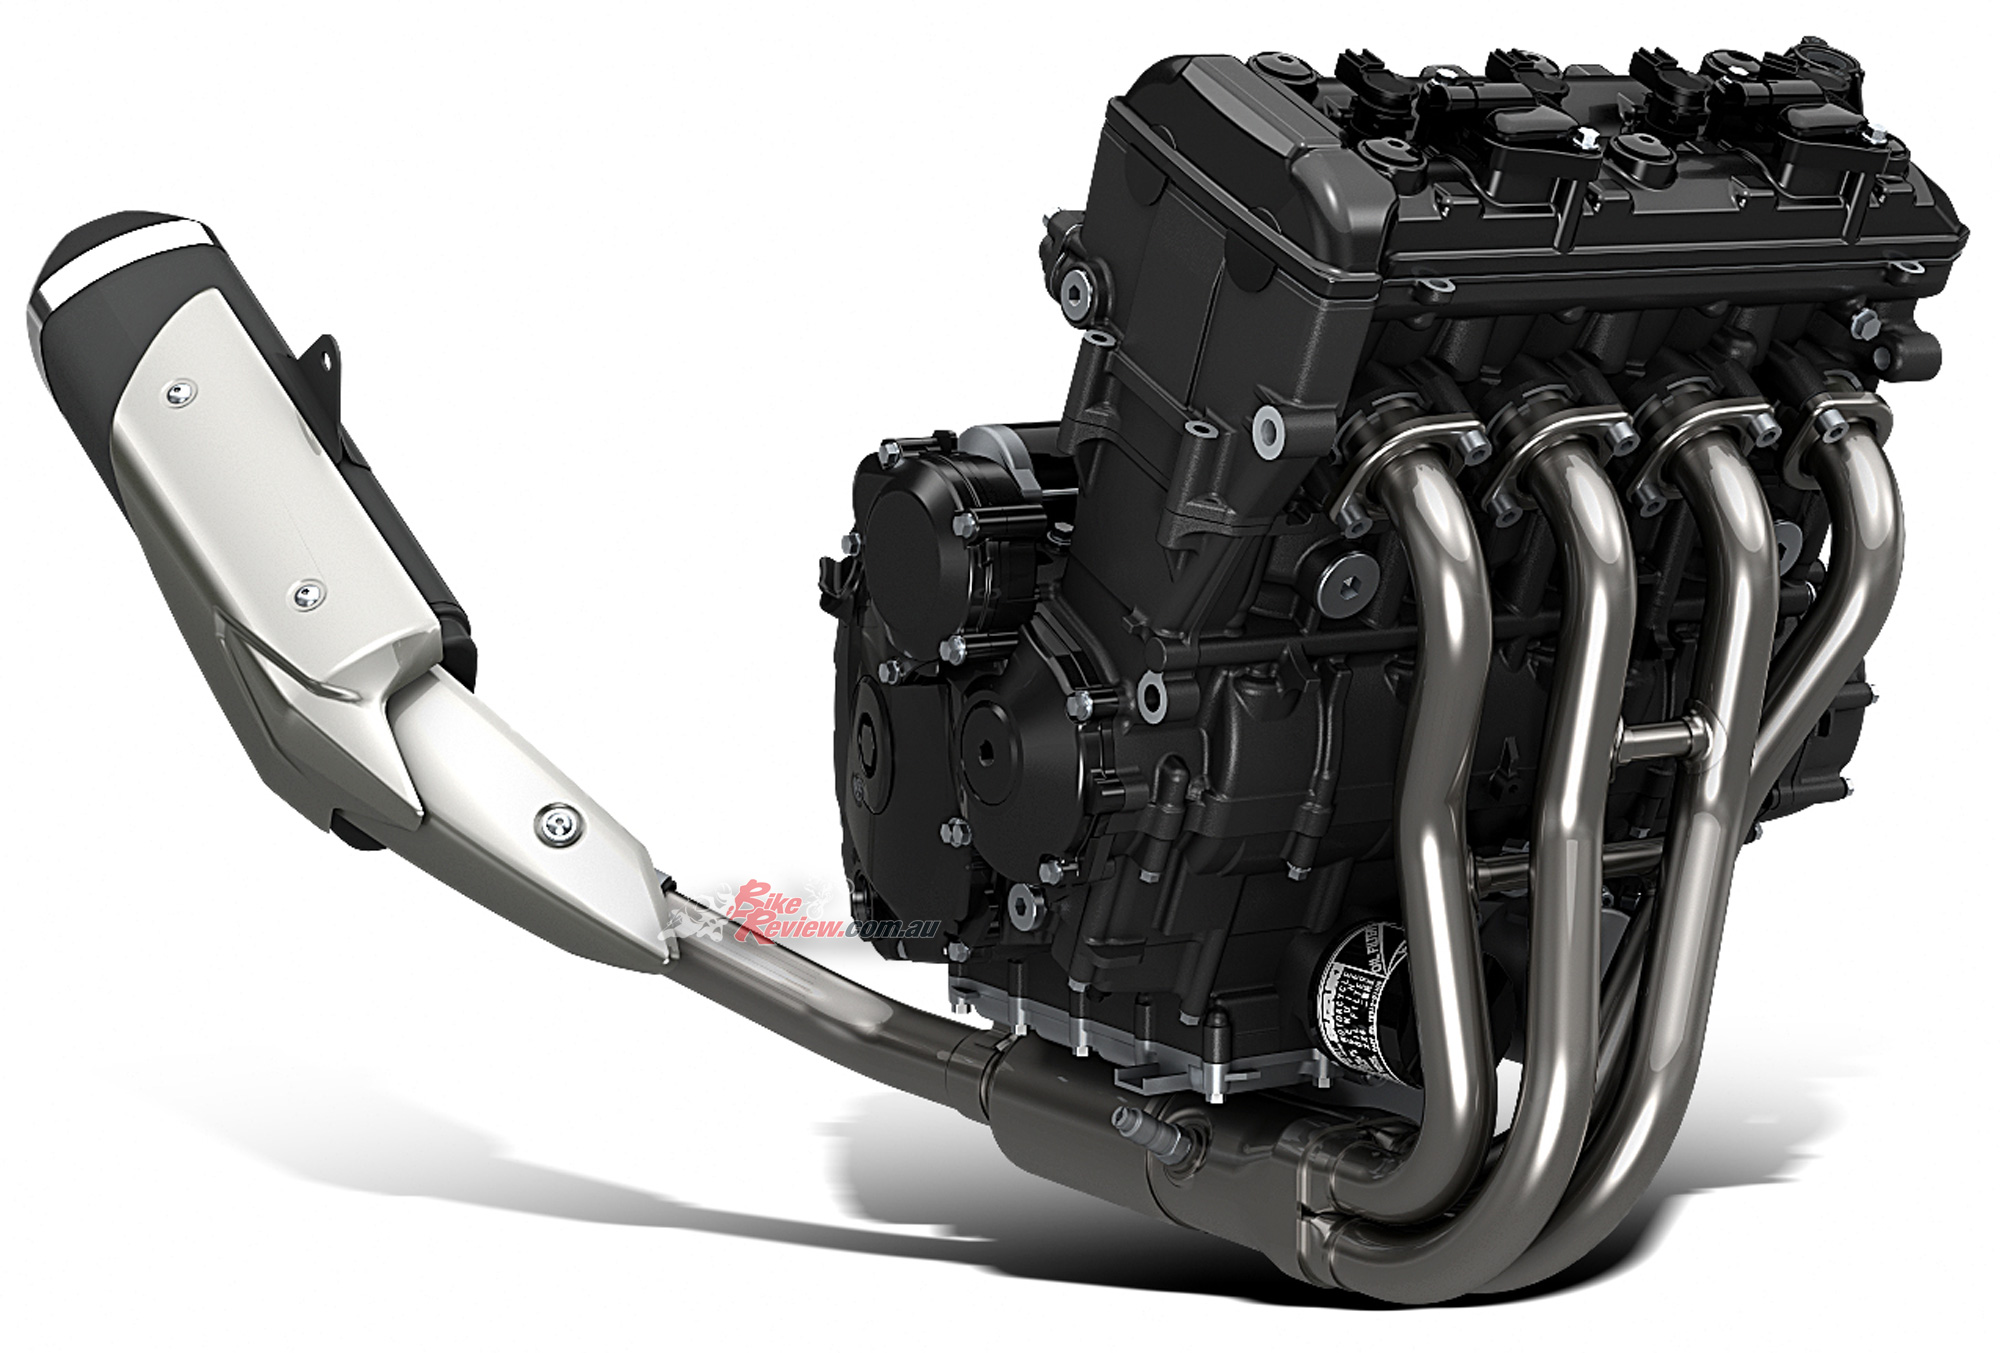 The GSX-S750 powerplant is that found on the GSR750 but revised for Euro4, increased power, better economy and a new exhaust system